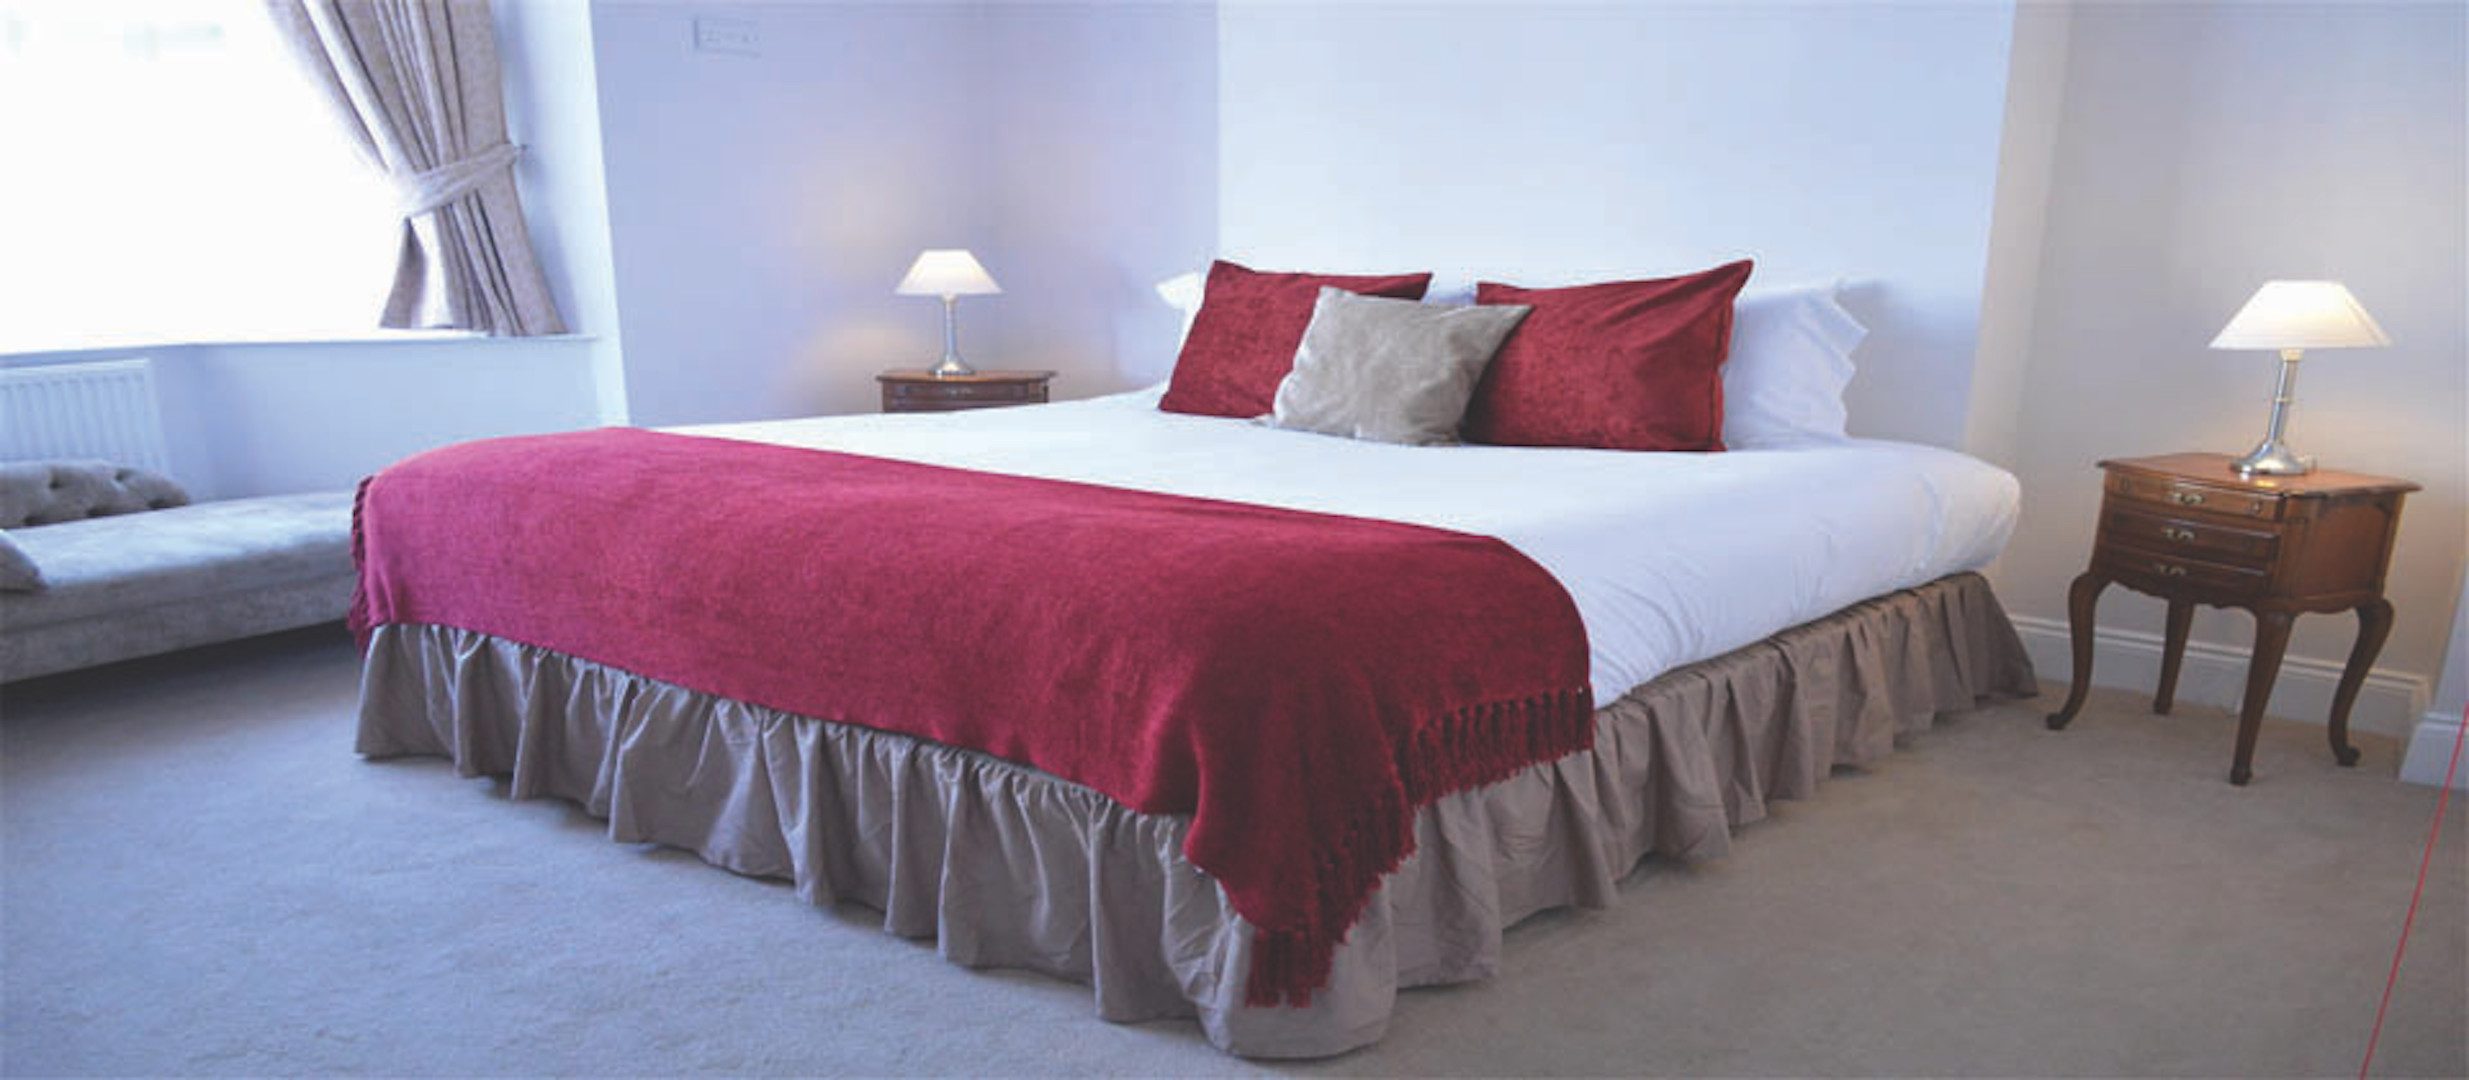 A bedroom with a large bed in a hotel room at The Oxford Osney Arms.